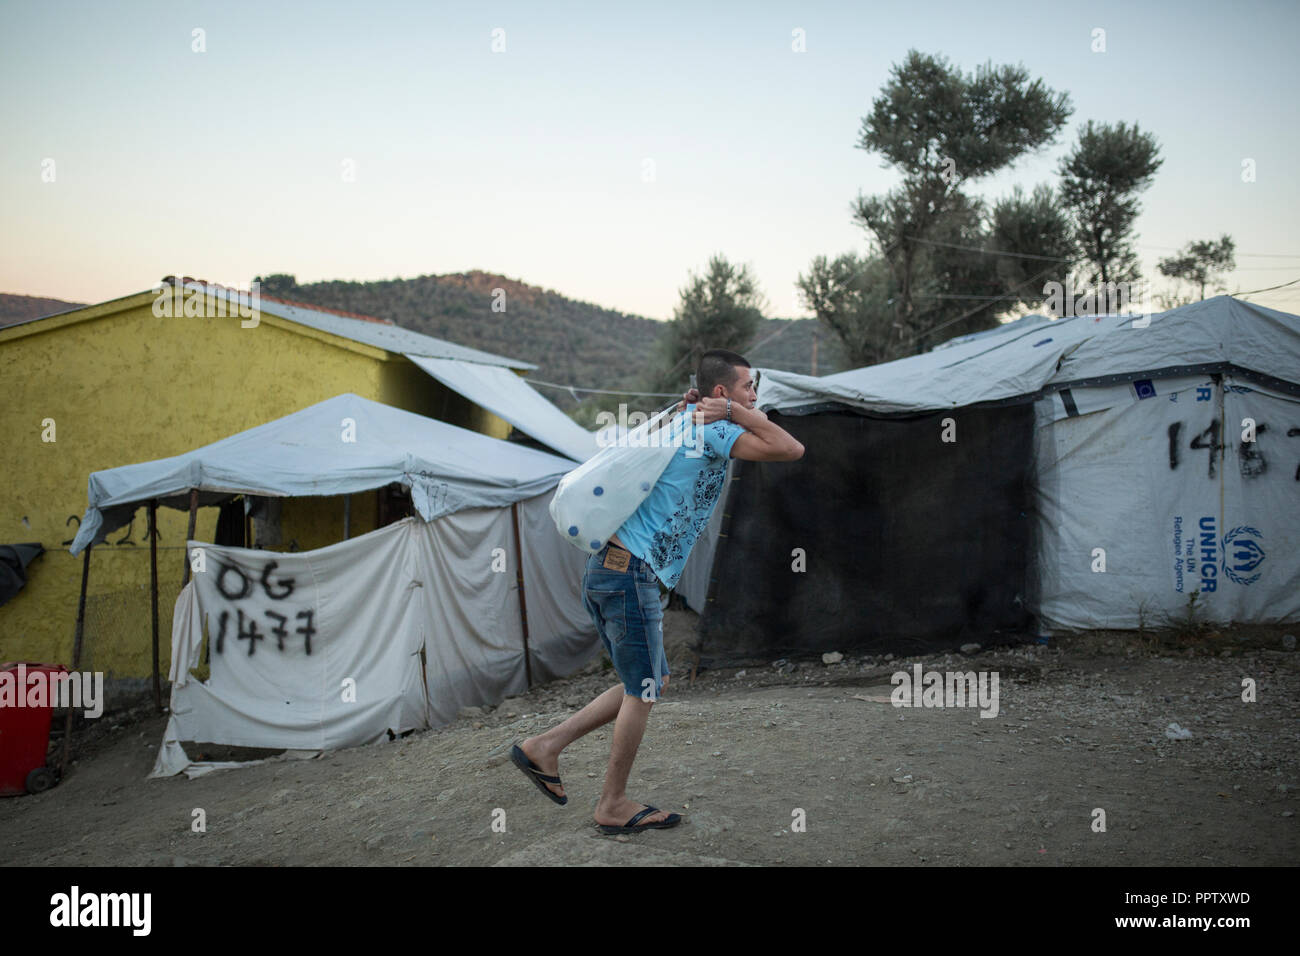 Moira, Greece. 24th Sep, 2018. In a temporary camp next to the refugee camp Moria, a man carries a plastic bag filled with water bottles. (to dpa 'Moria: The camp of shame on the island of Lesbos' of 28.09.2018) Credit: Socrates Baltagiannis/dpa/Alamy Live News - Stock Image